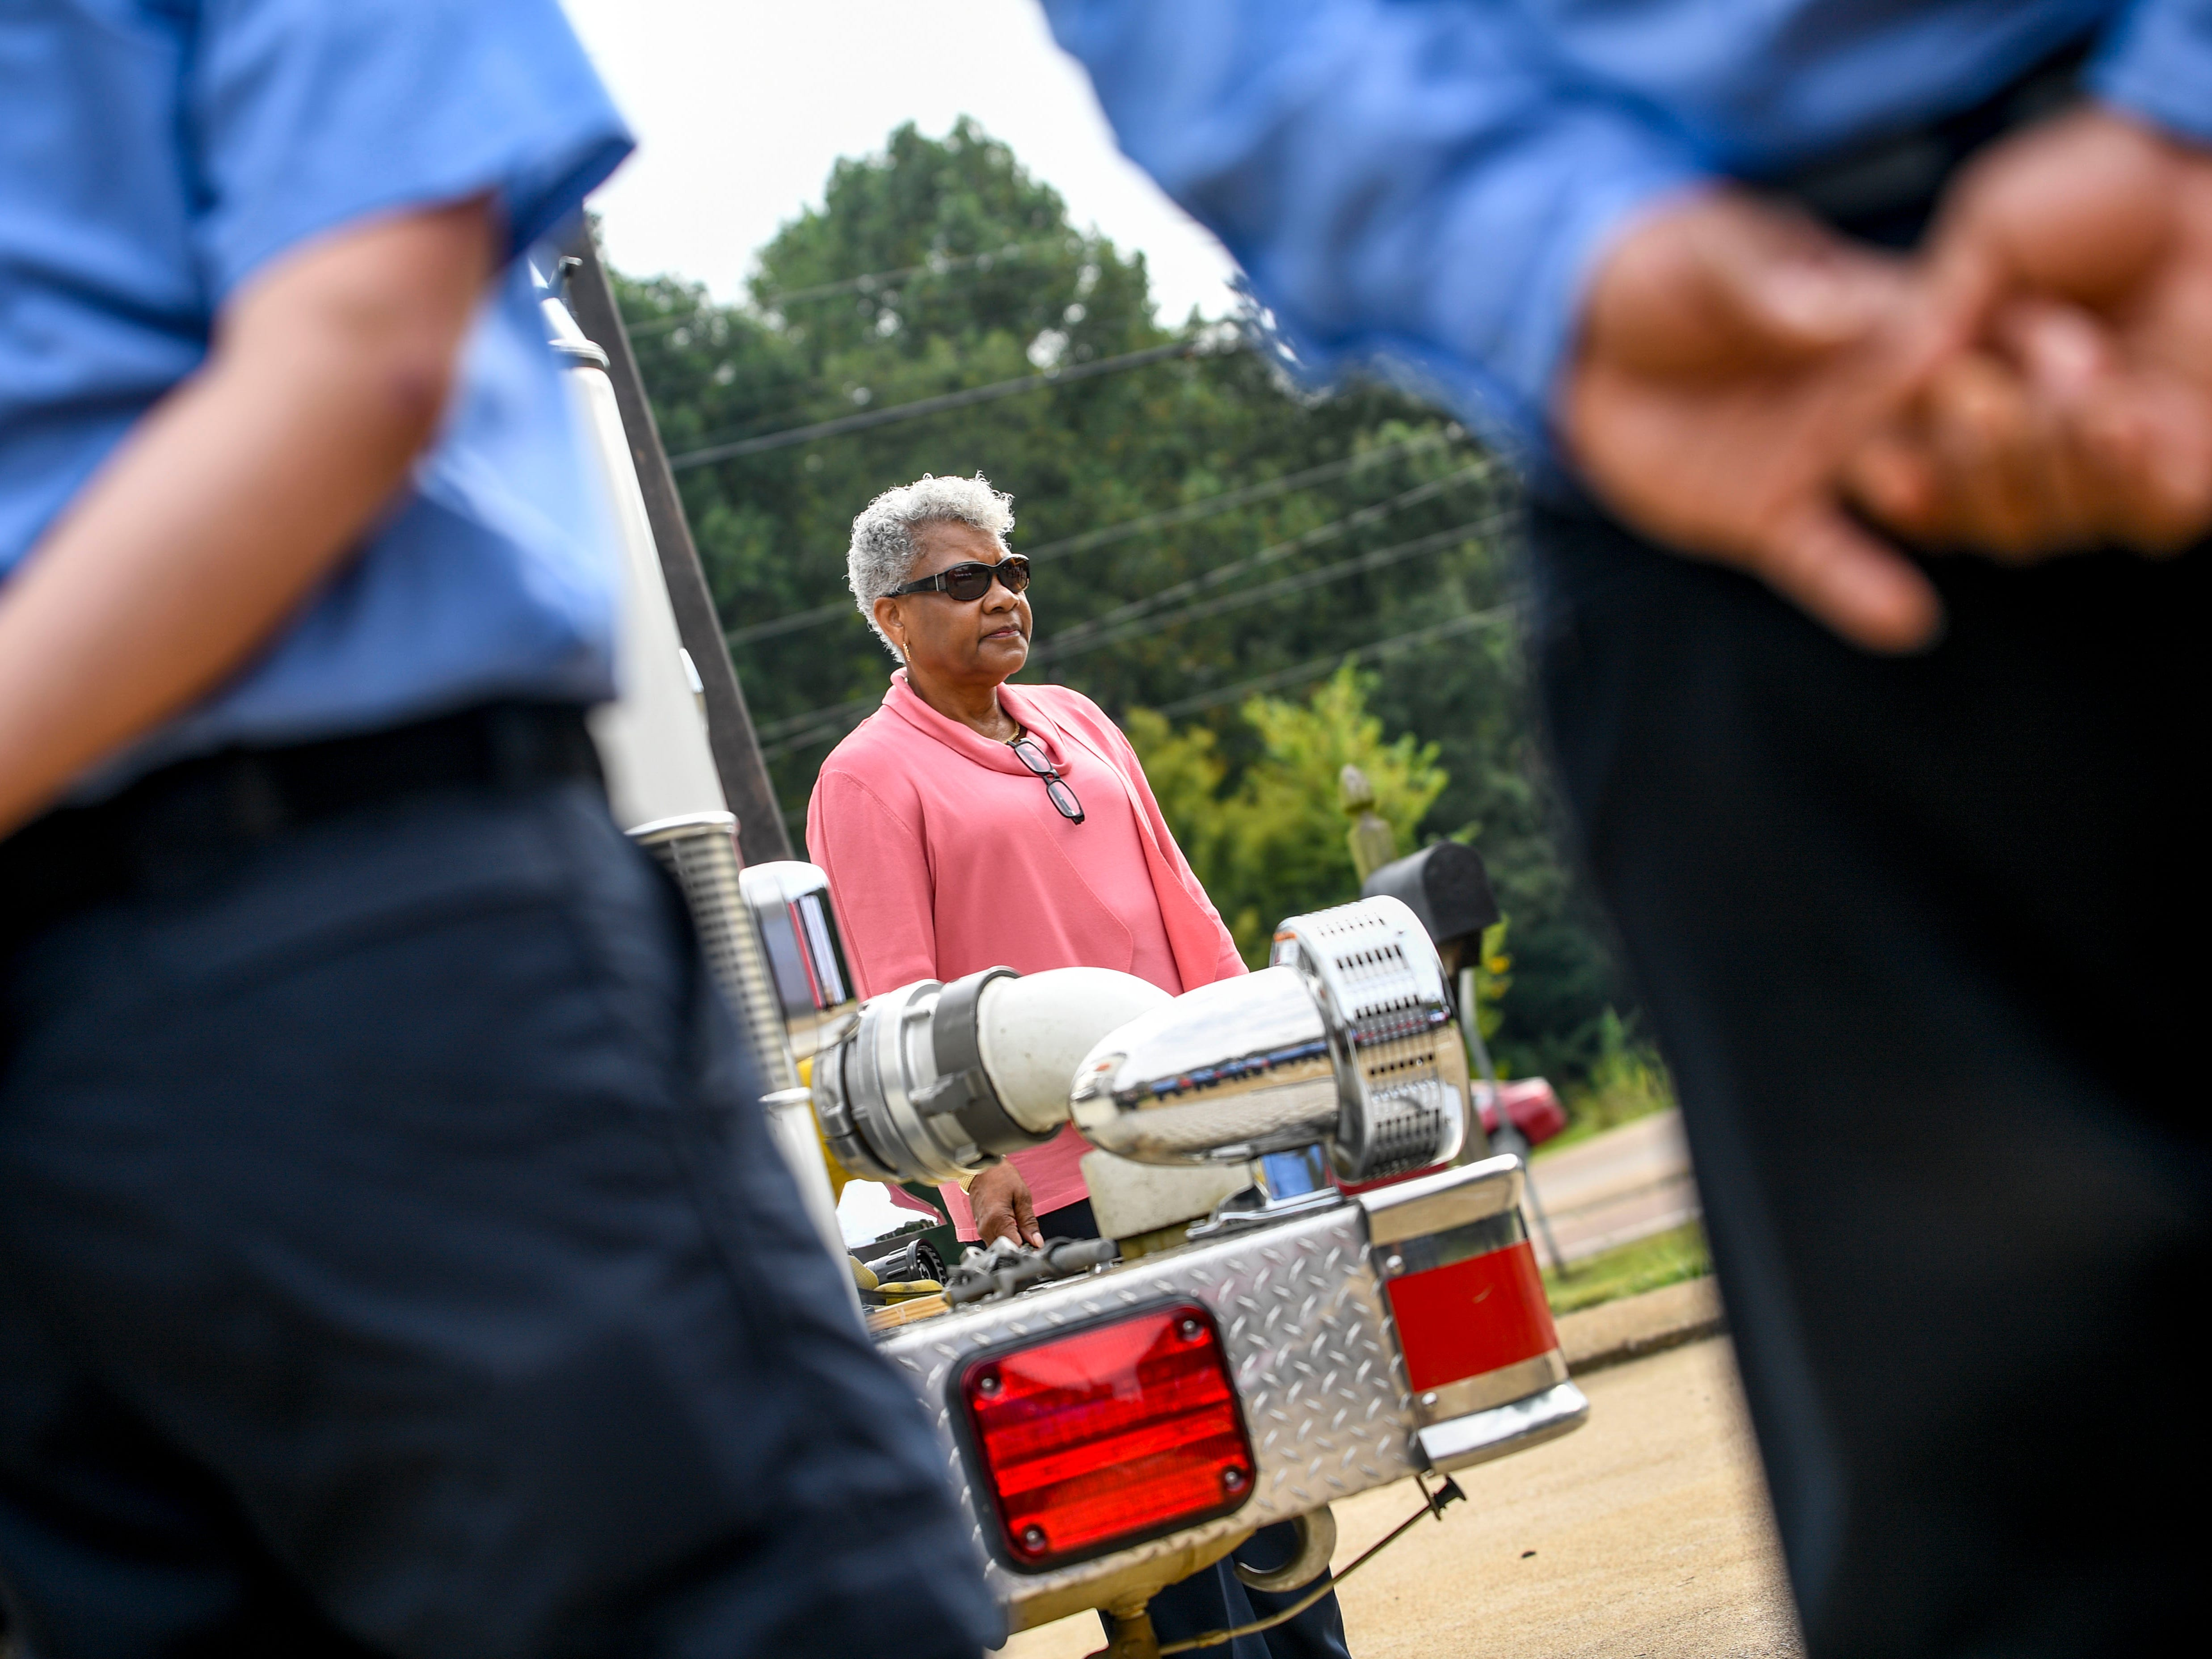 Personal director Lynn Henning prepares to ring a bell on the front bumper of a fire engine during a ceremony honoring the victims of the 9/11 attacks at Fire Station 3 in Jackson, Tenn., on Tuesday, Sept. 11, 2018.